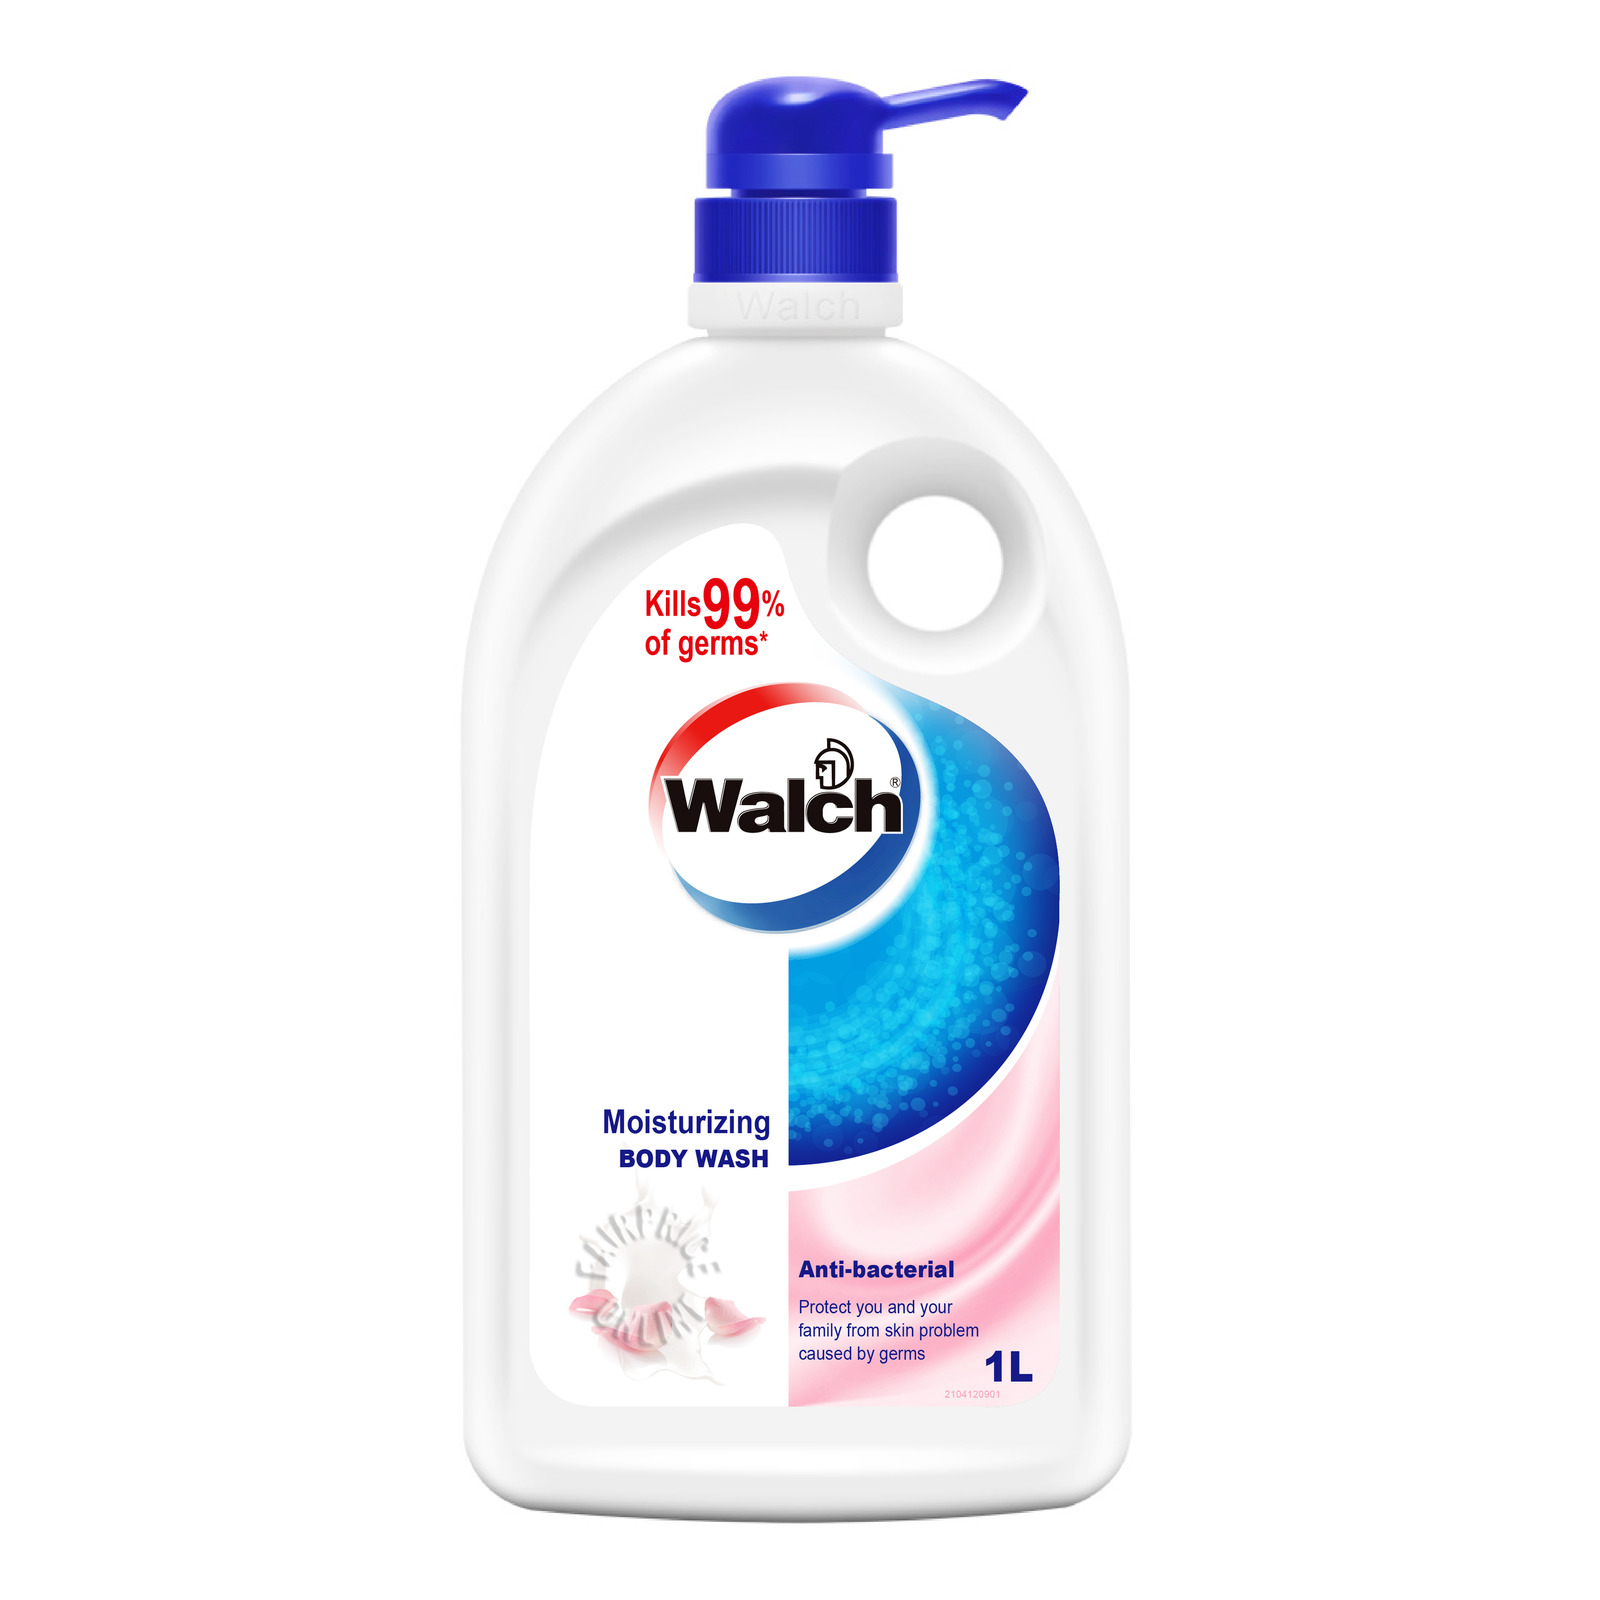 Walch Anti-bacterial Body Wash - Moisturizing